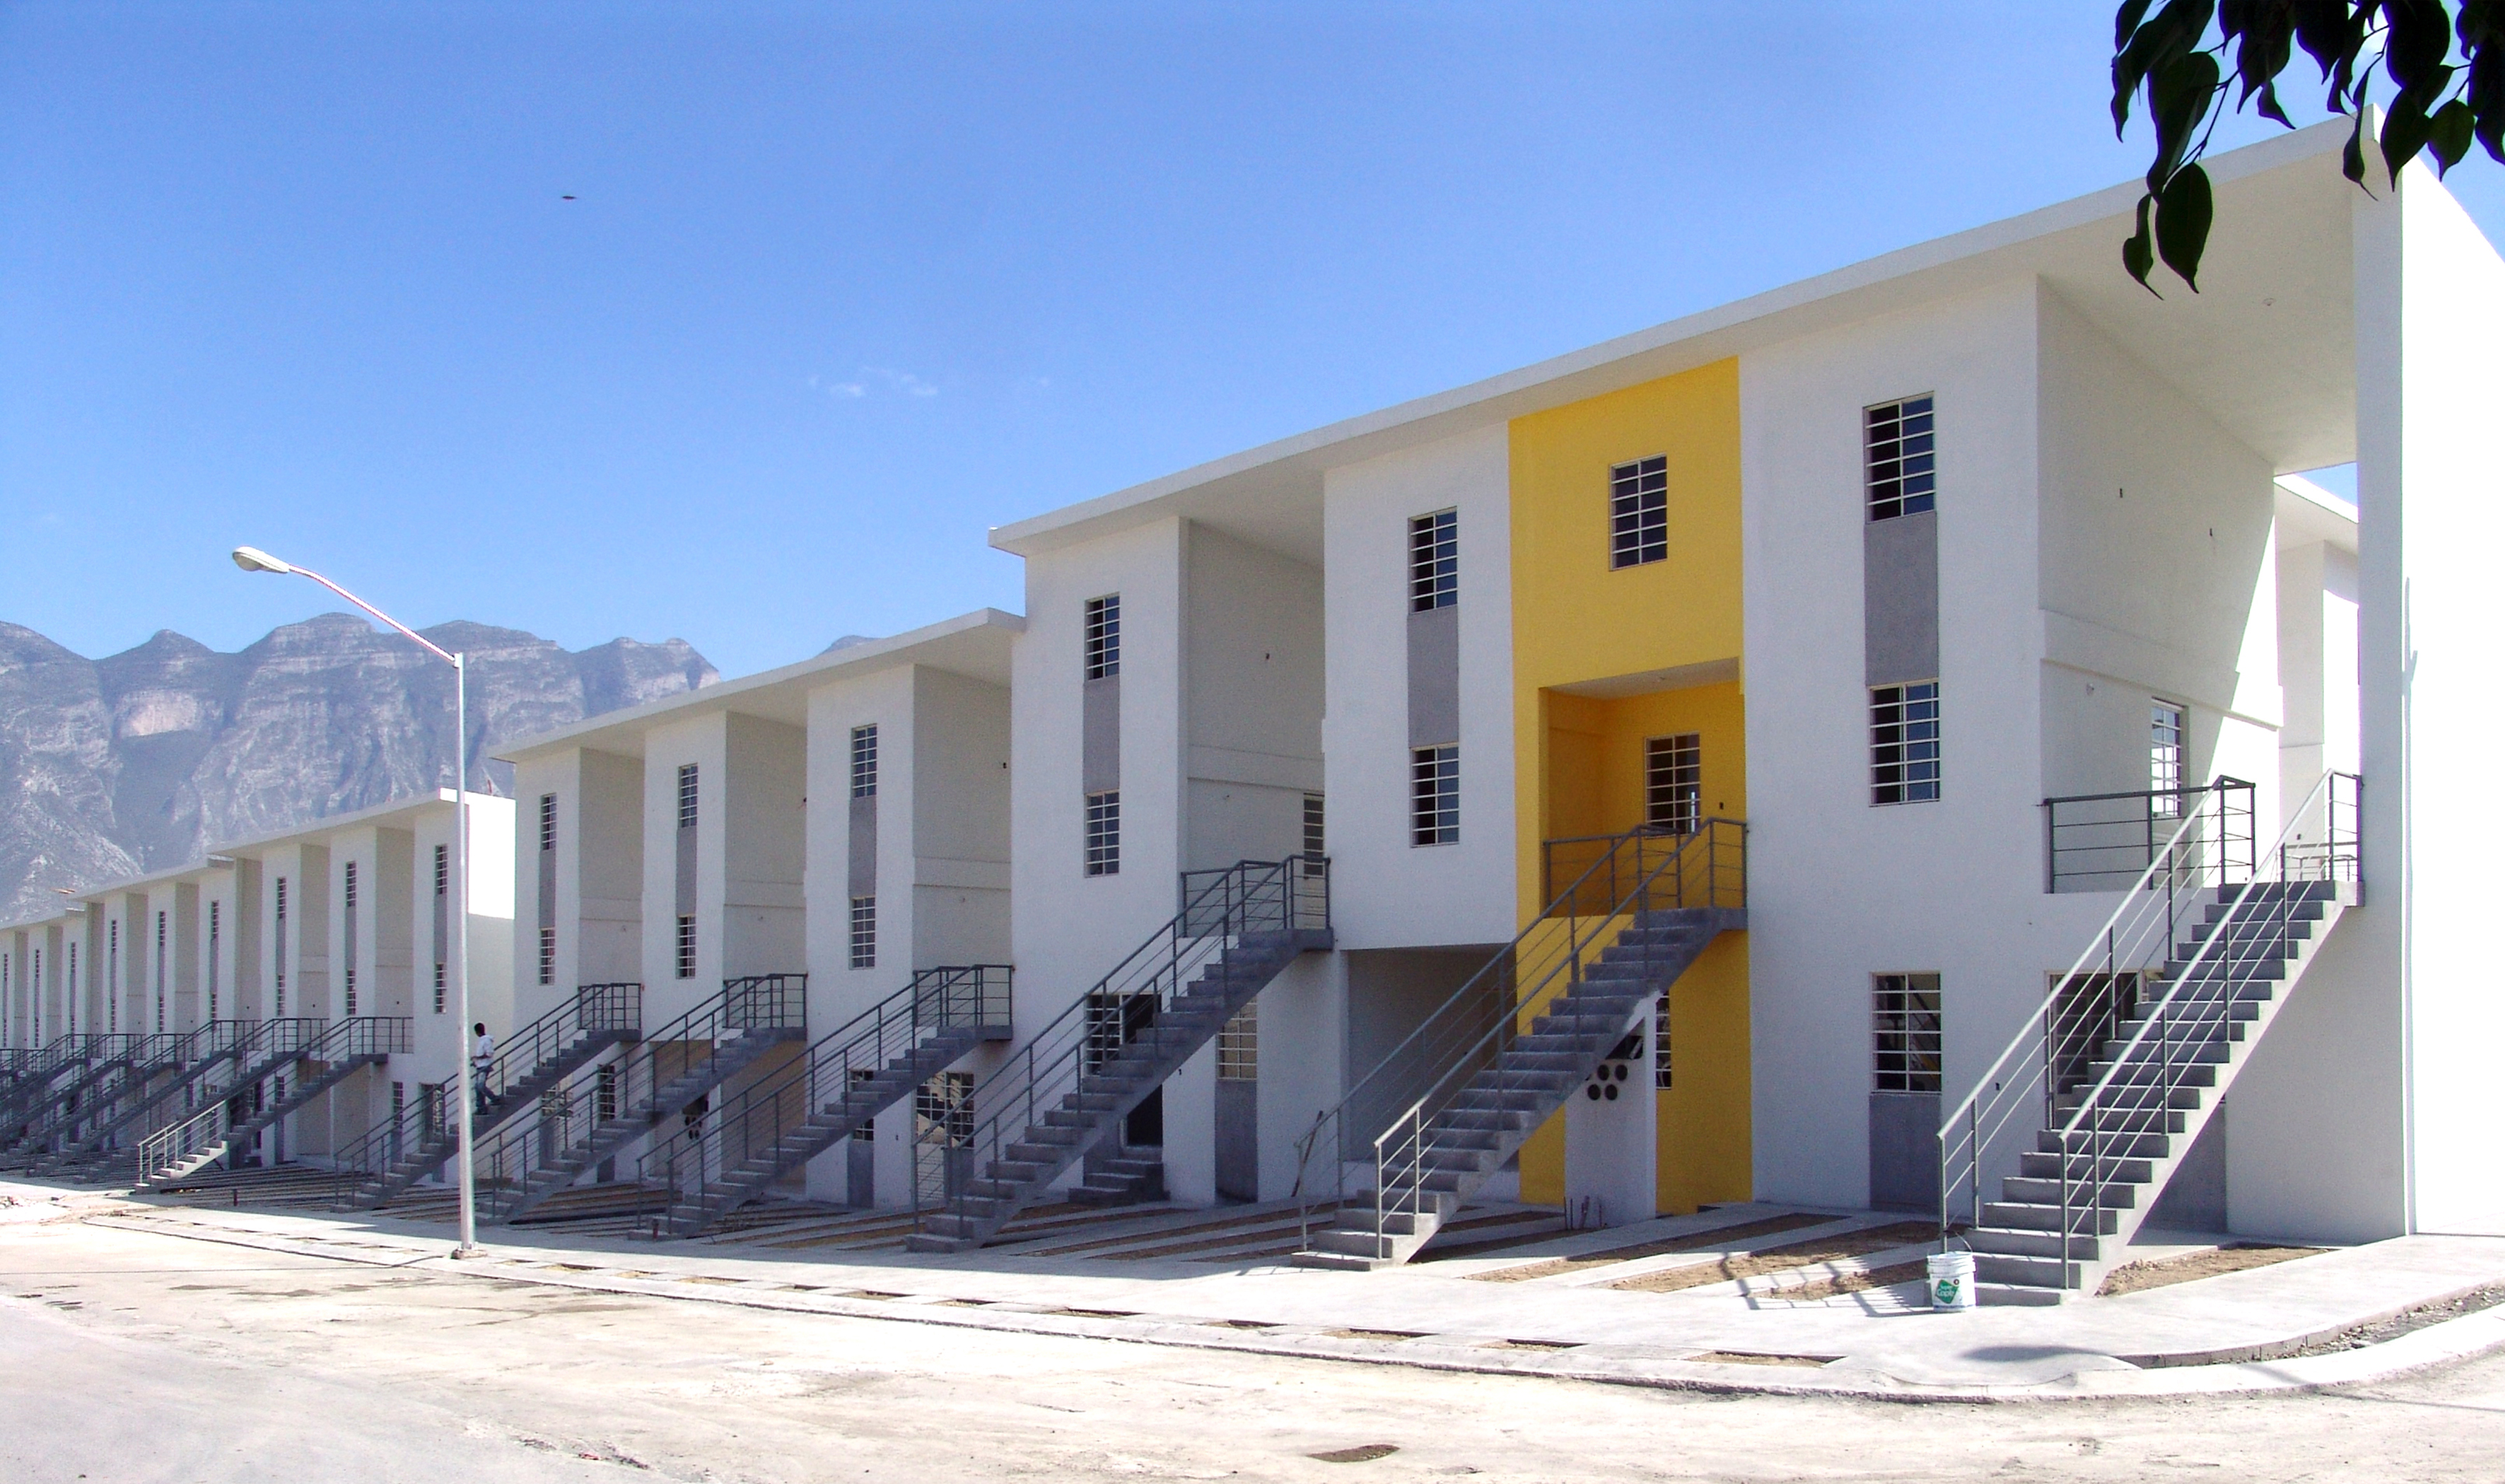 These low-income housing units, designed by Araveno, were built in 2010 in Monterrey, Mexico. The houses were constructed to seem half-completed, a choice meant to encourage people to add their own contributions to the structure. Photo by Ramiro Ramirez